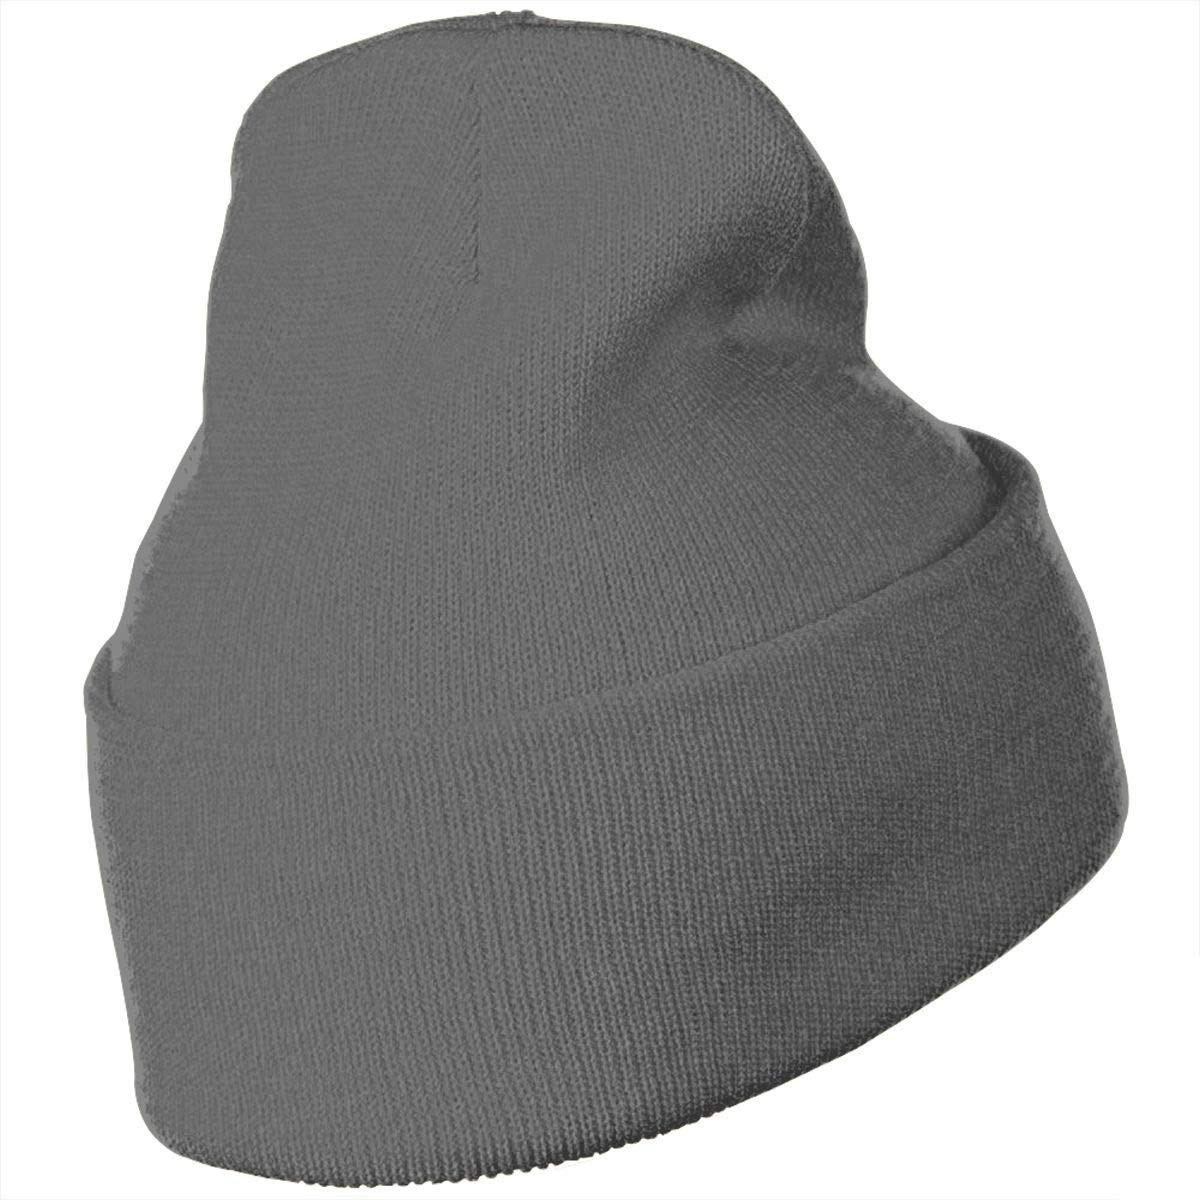 TAOMAP89 Boston Terrier Face Women and Men Skull Caps Winter Warm Stretchy Knitting Beanie Hats